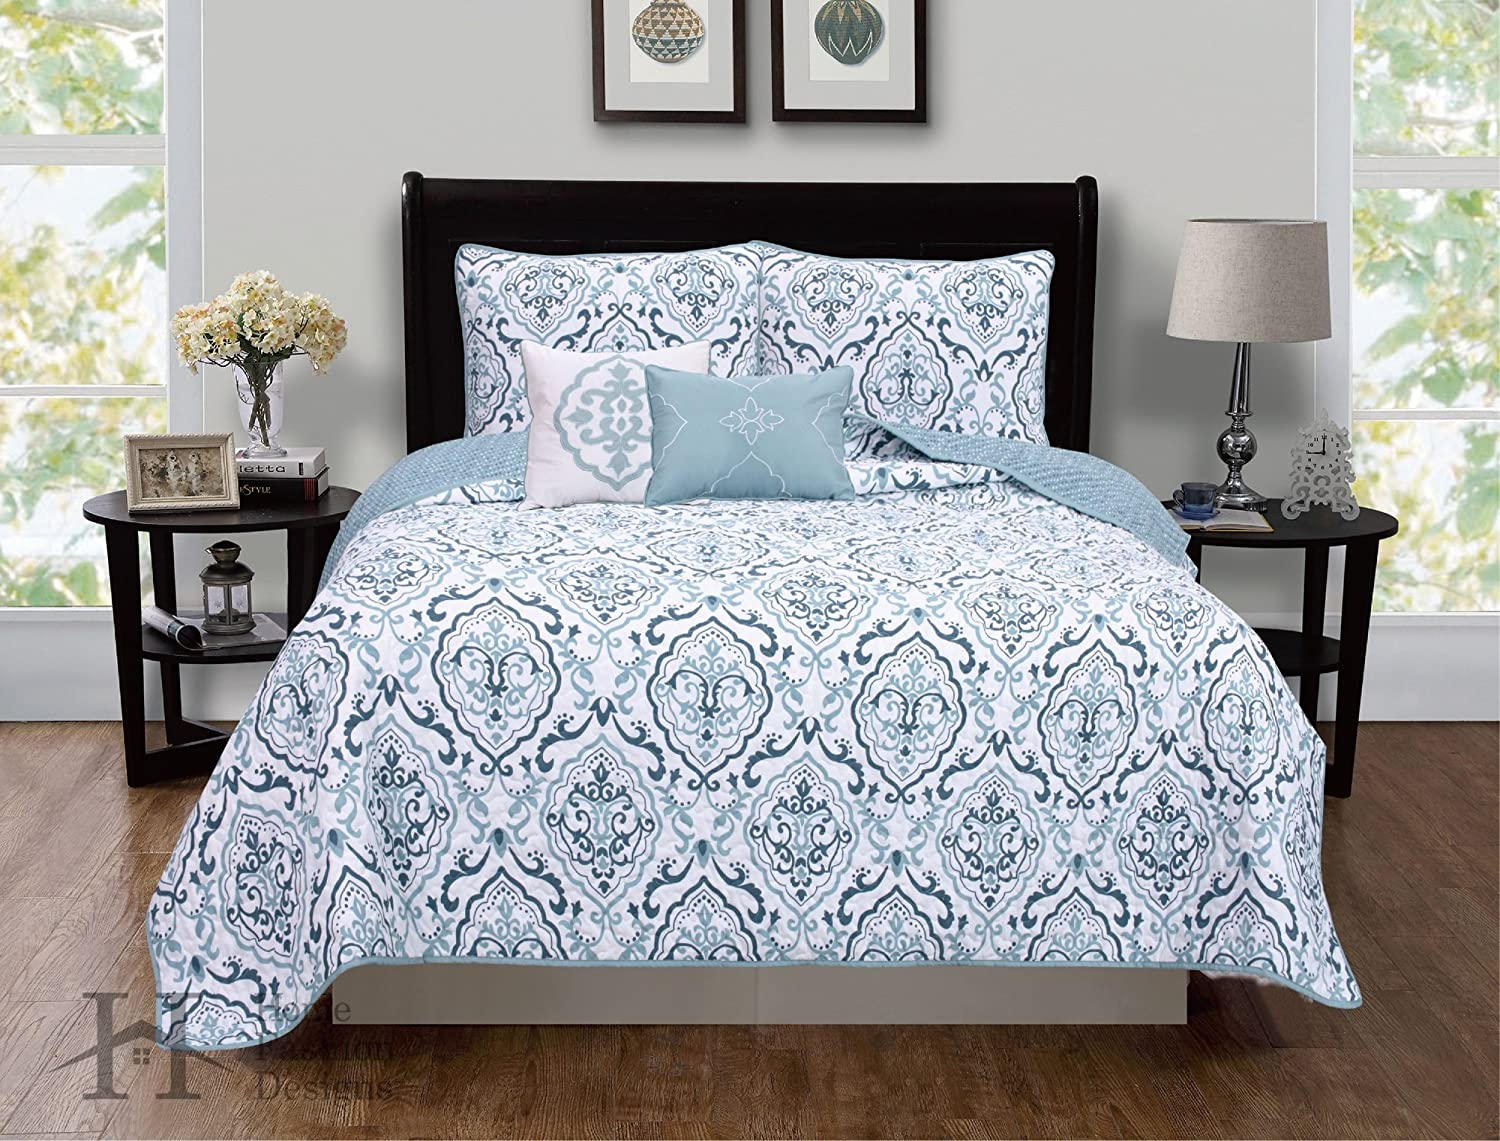 Amazon.com: 5-Piece Quilt Set with Shams & Decorative Pillows ... : beautiful quilt sets - Adamdwight.com